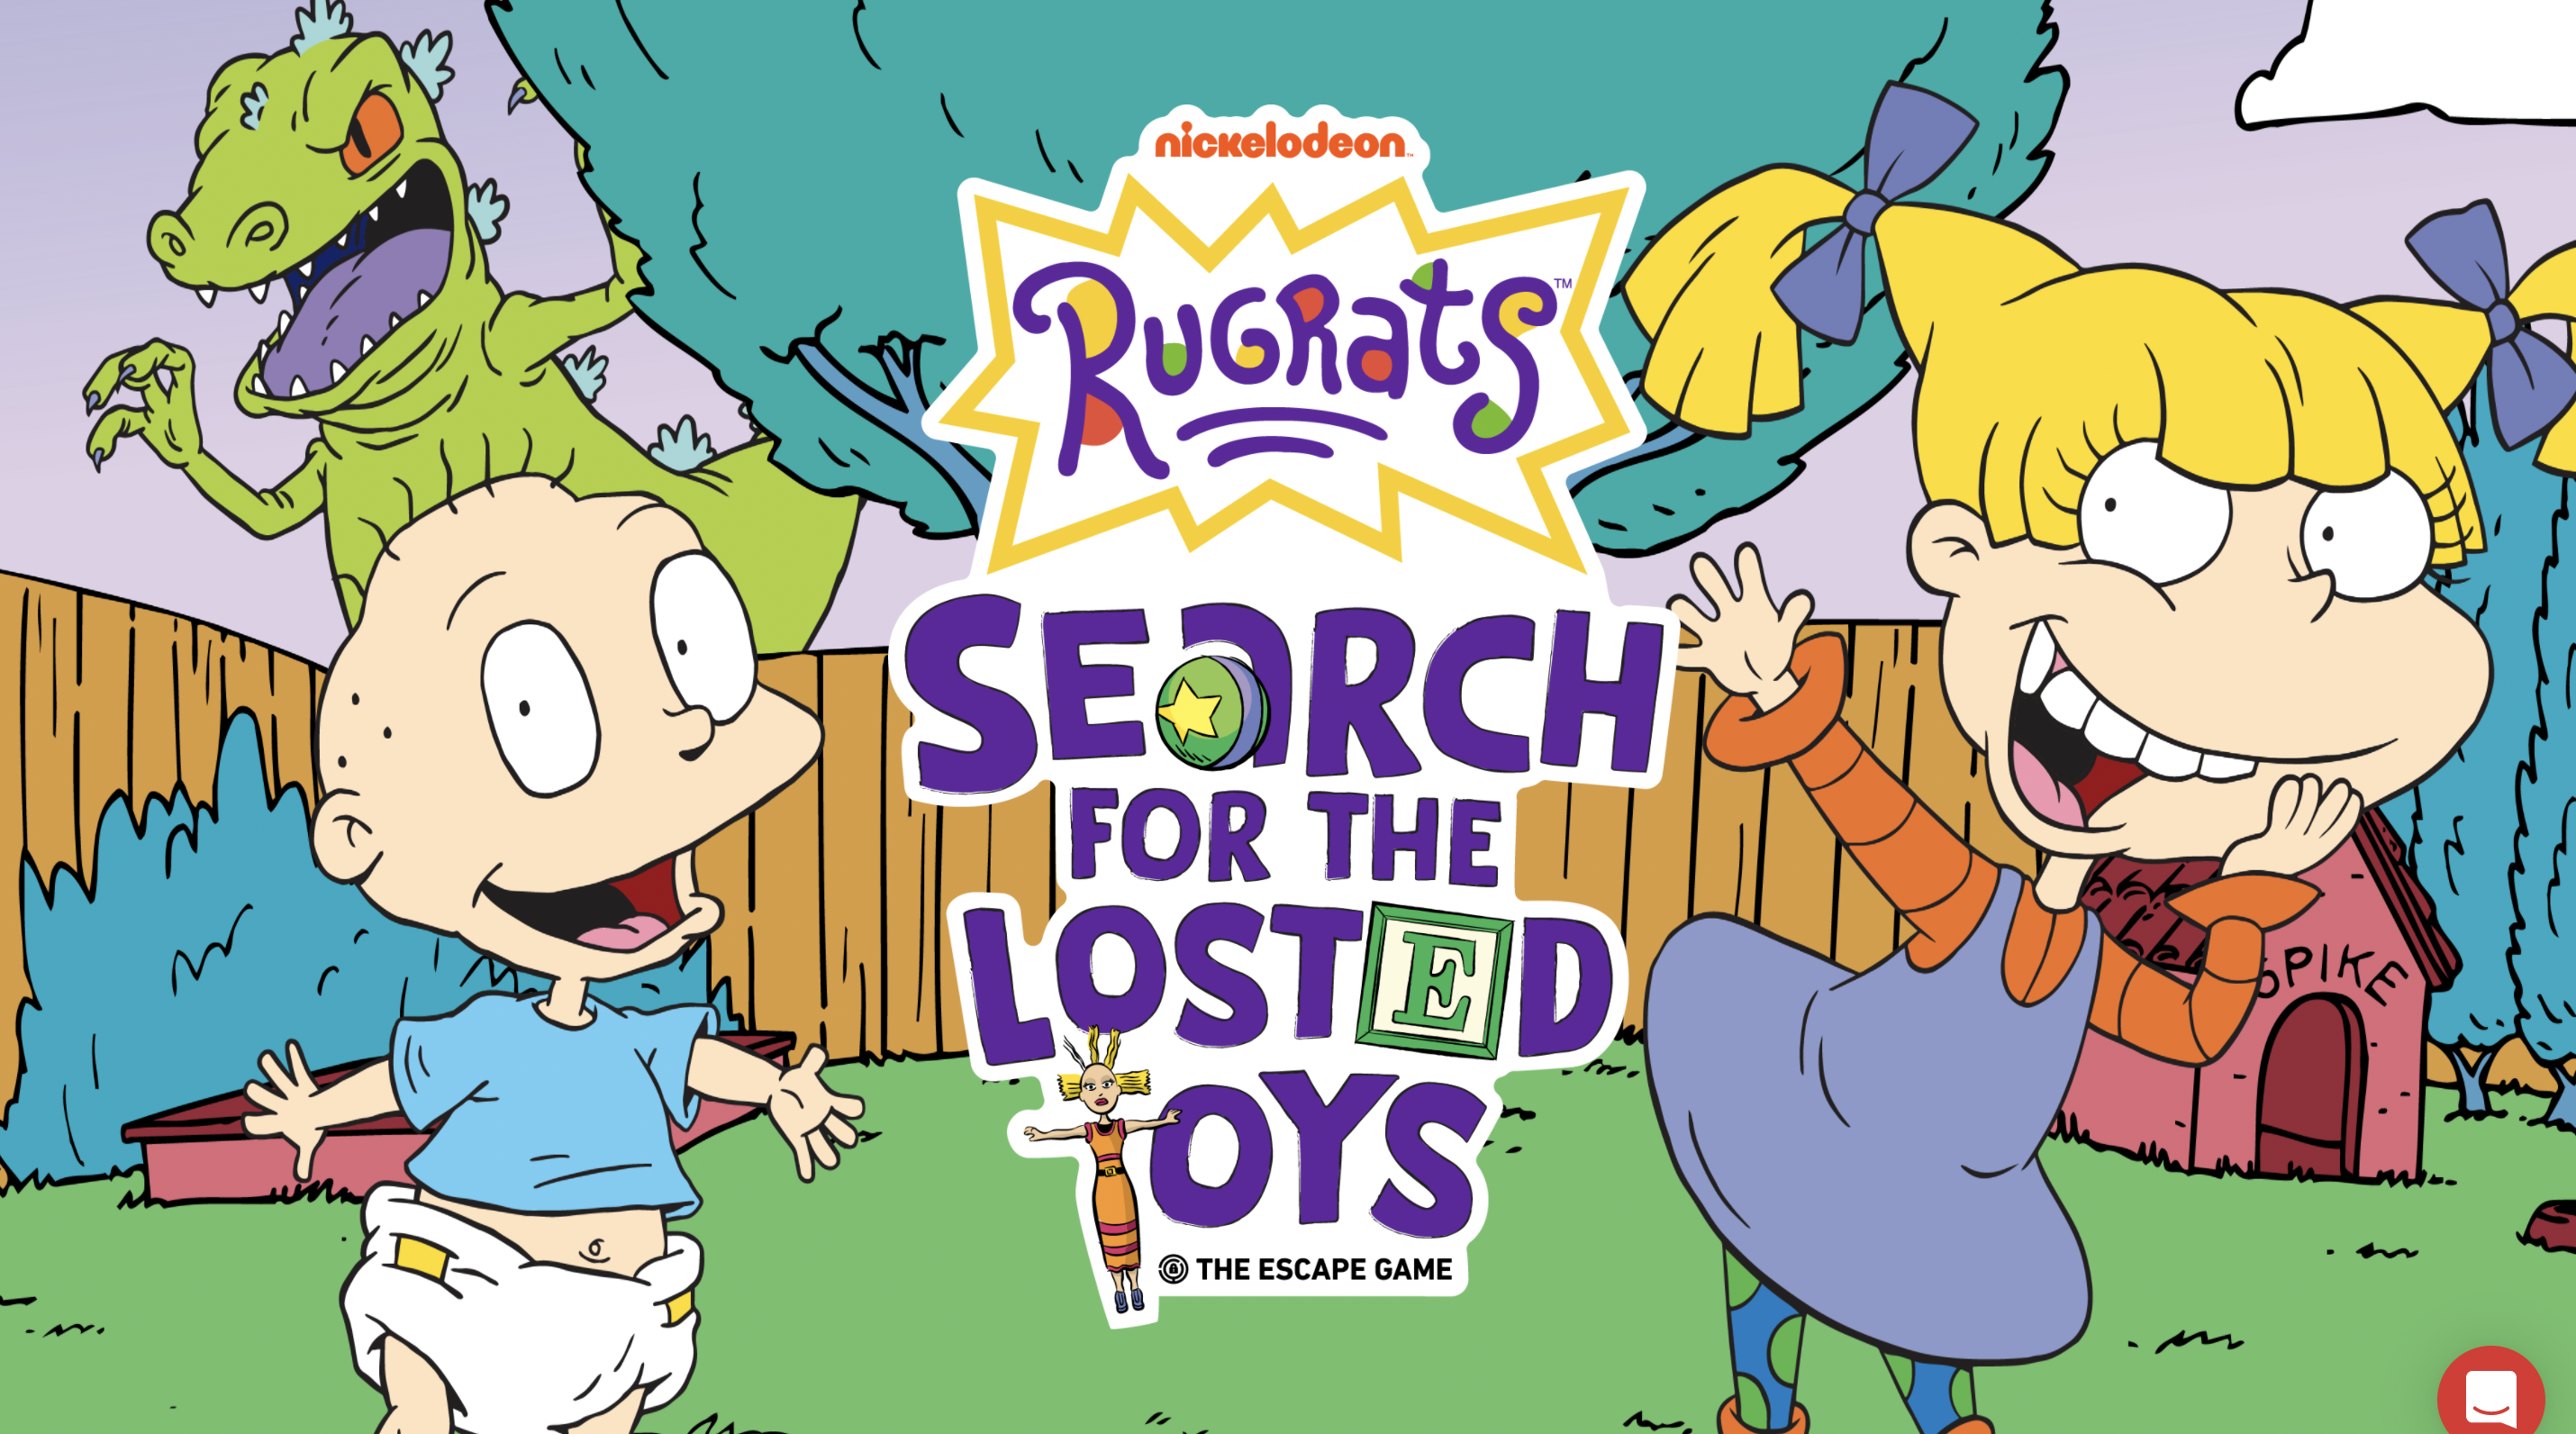 Rugrats 30th Anniversary Escape Room from Nickelodeon and The Escape Game